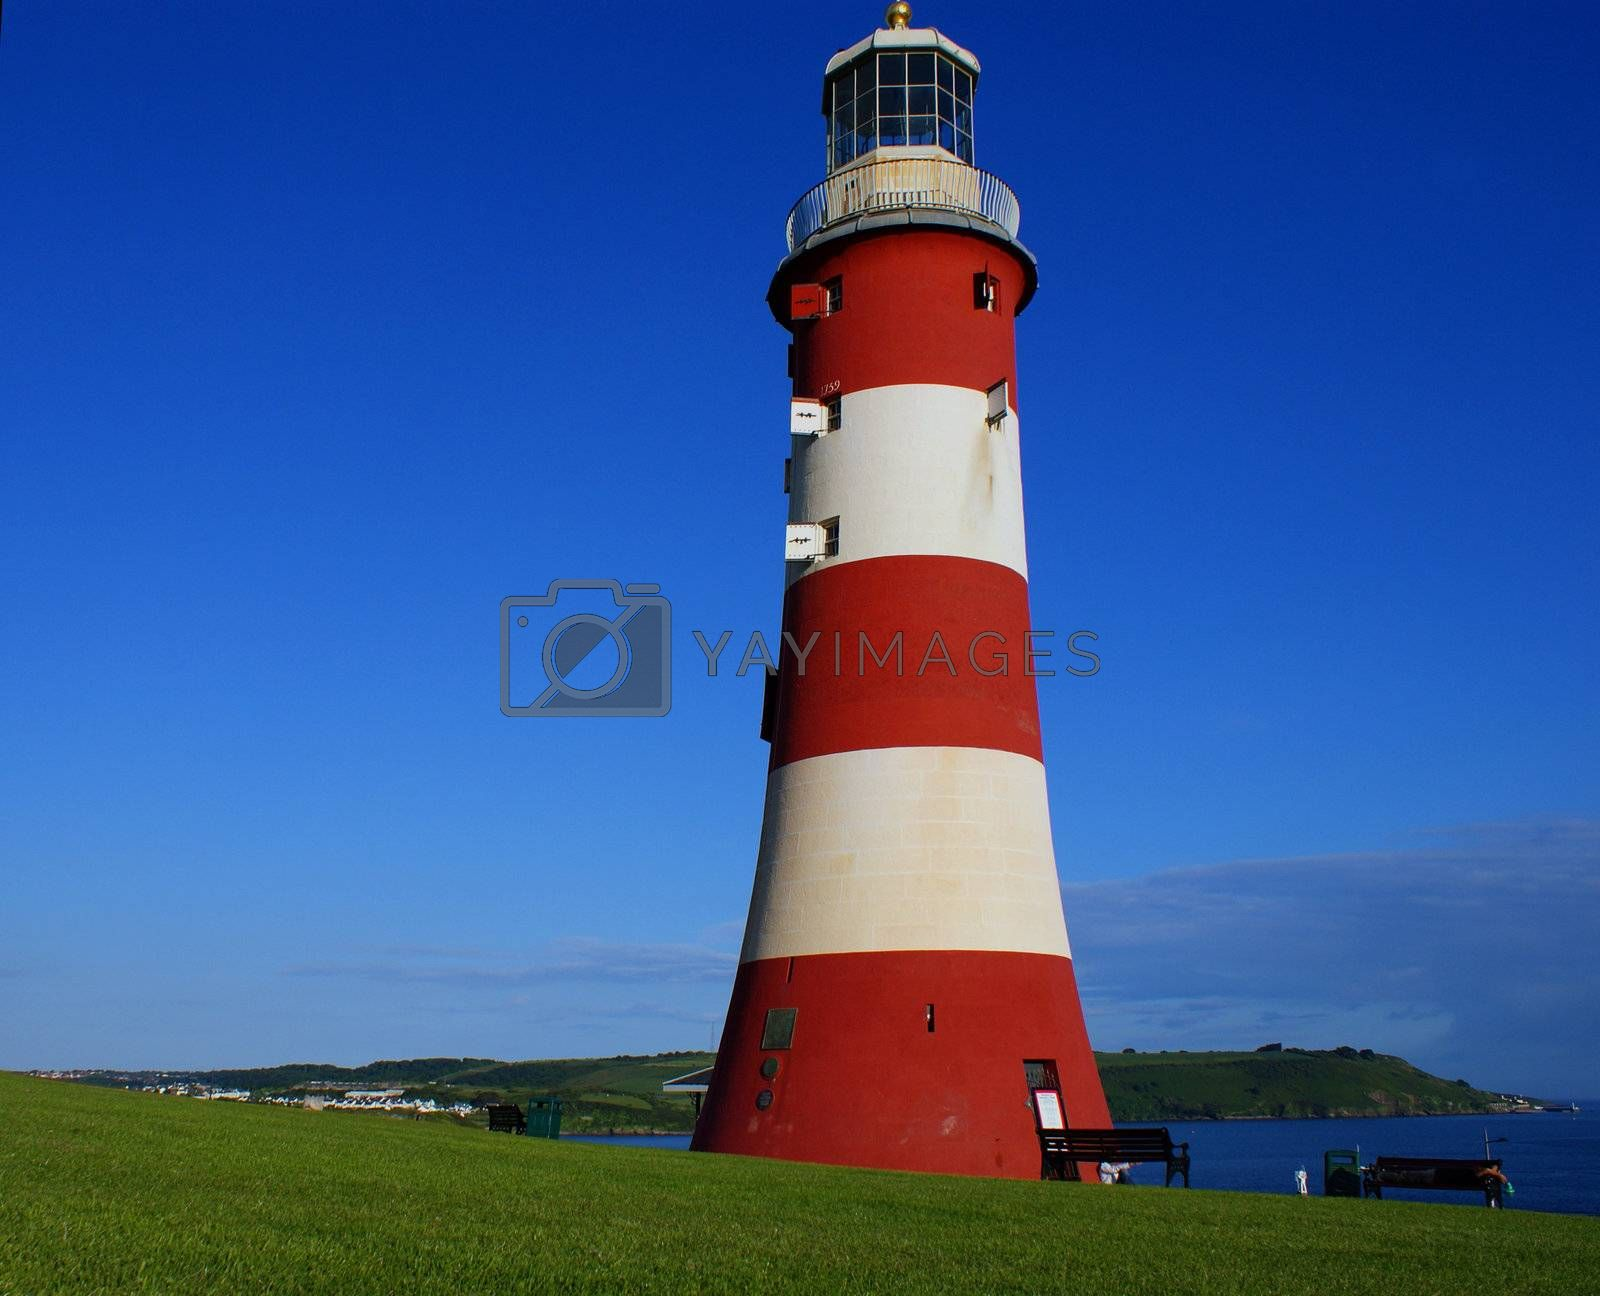 Plymouth lighthouse and blue sky